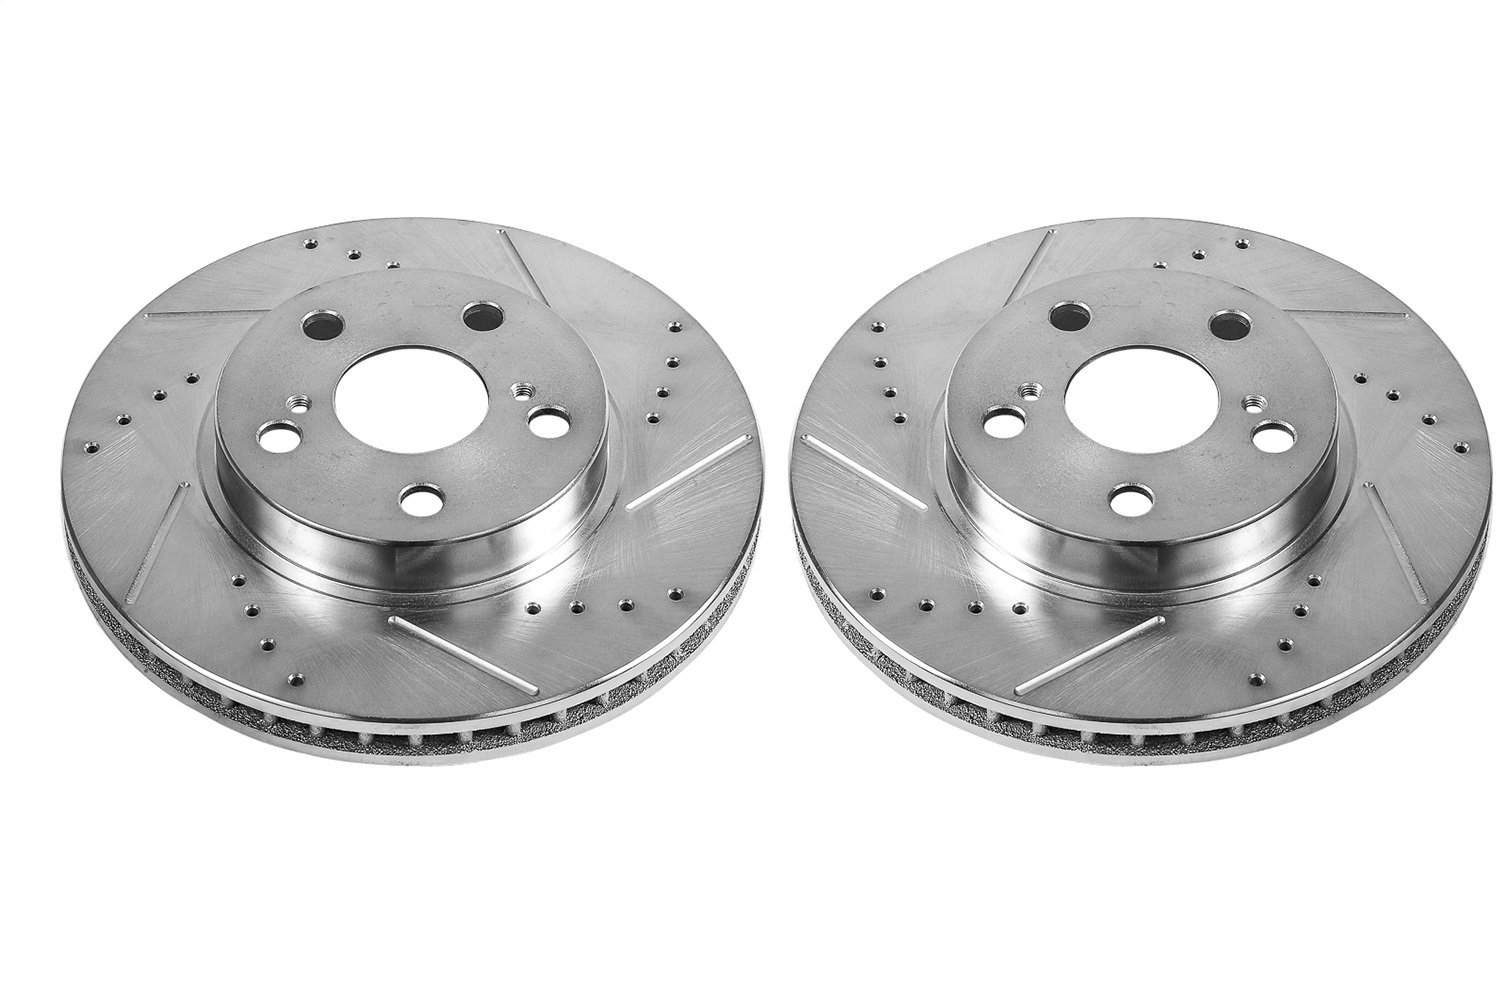 Power Stop EBR1210XPR Drilled and Slotted Brake Rotors